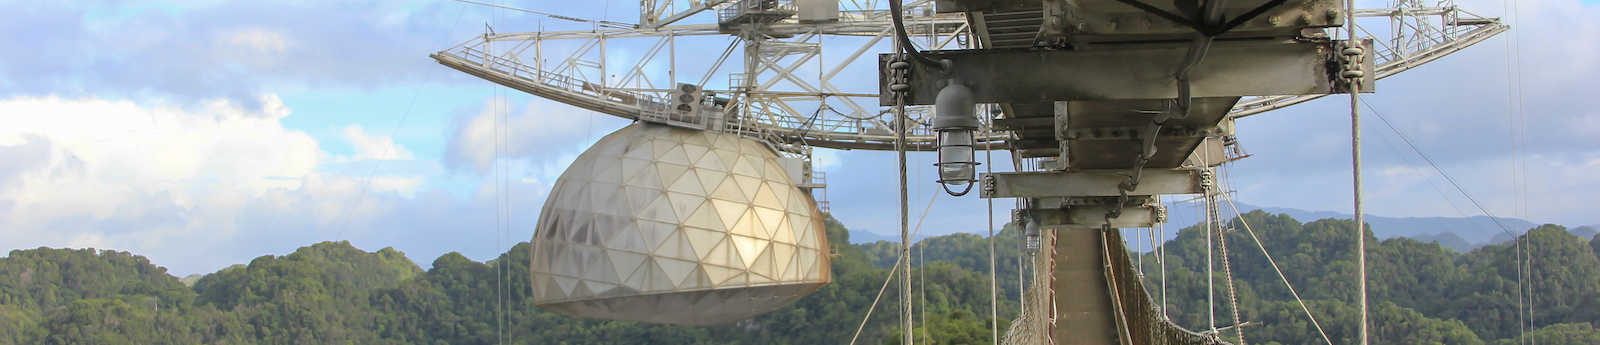 Press Release-SwRI scientist part of team characterizing near-Earth objects